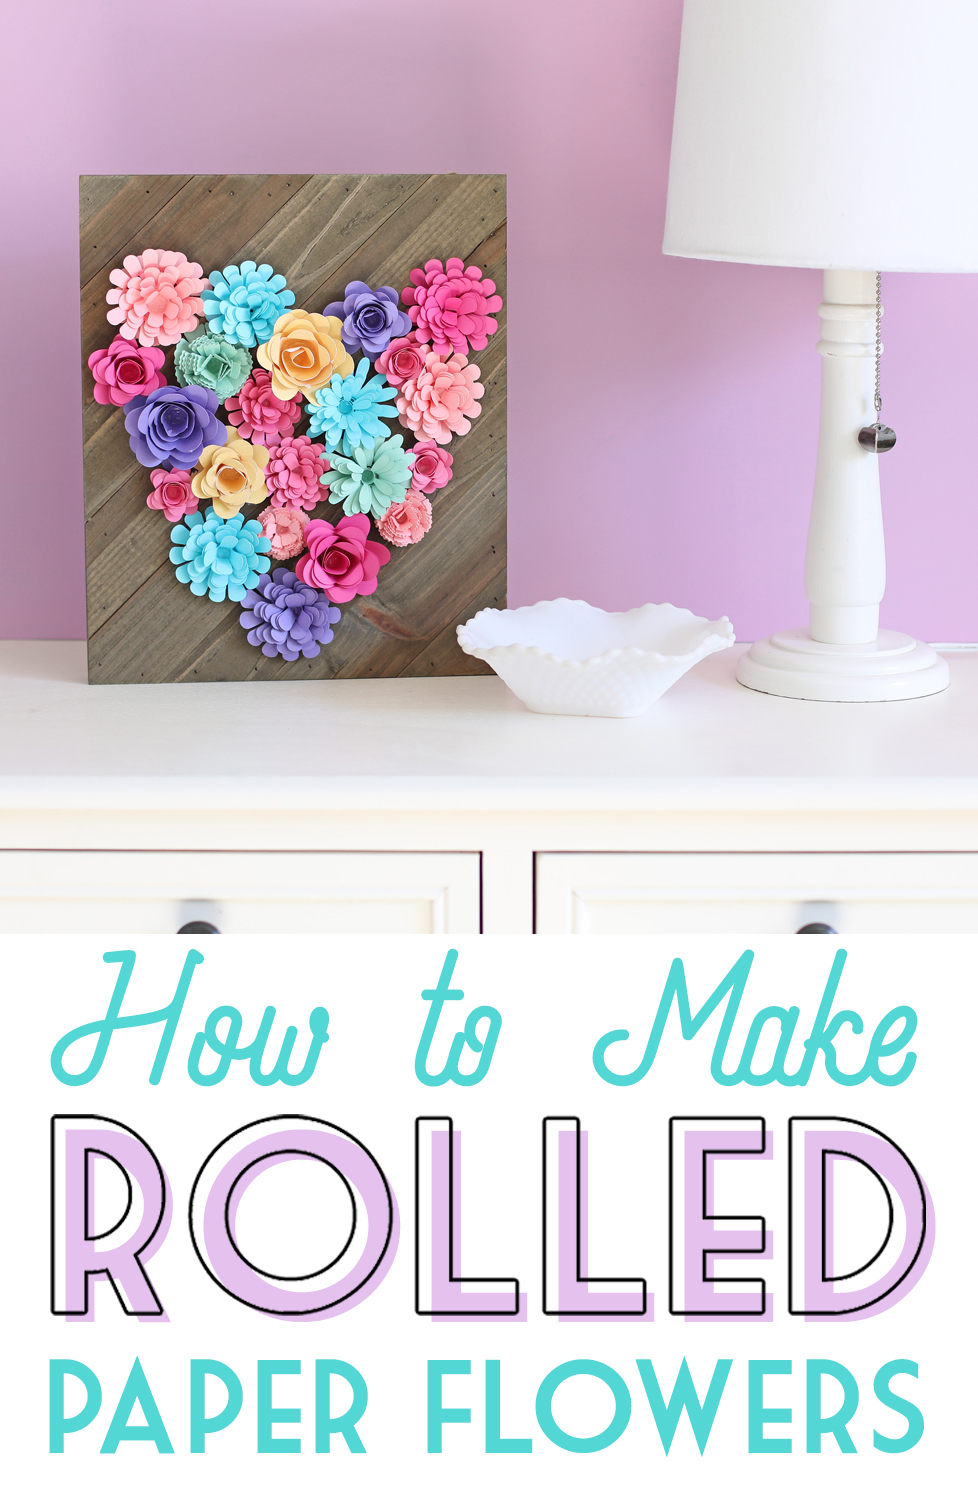 Rolled Paper Flower Sign Thecraftpatchblog